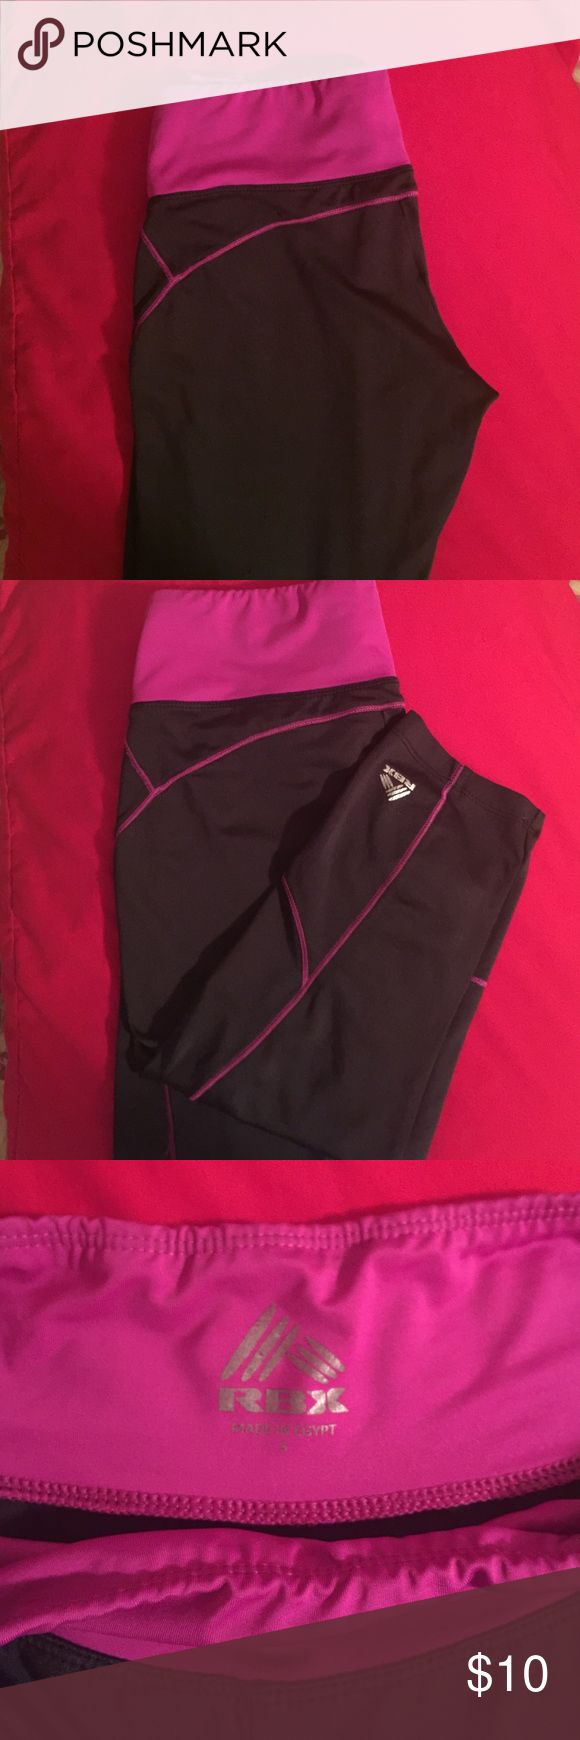 Sports training capris Black and purple/violet training pants. The material is similar to spandex/ polyester. They're also stretchy and body fitting. rxb Pants Leggings